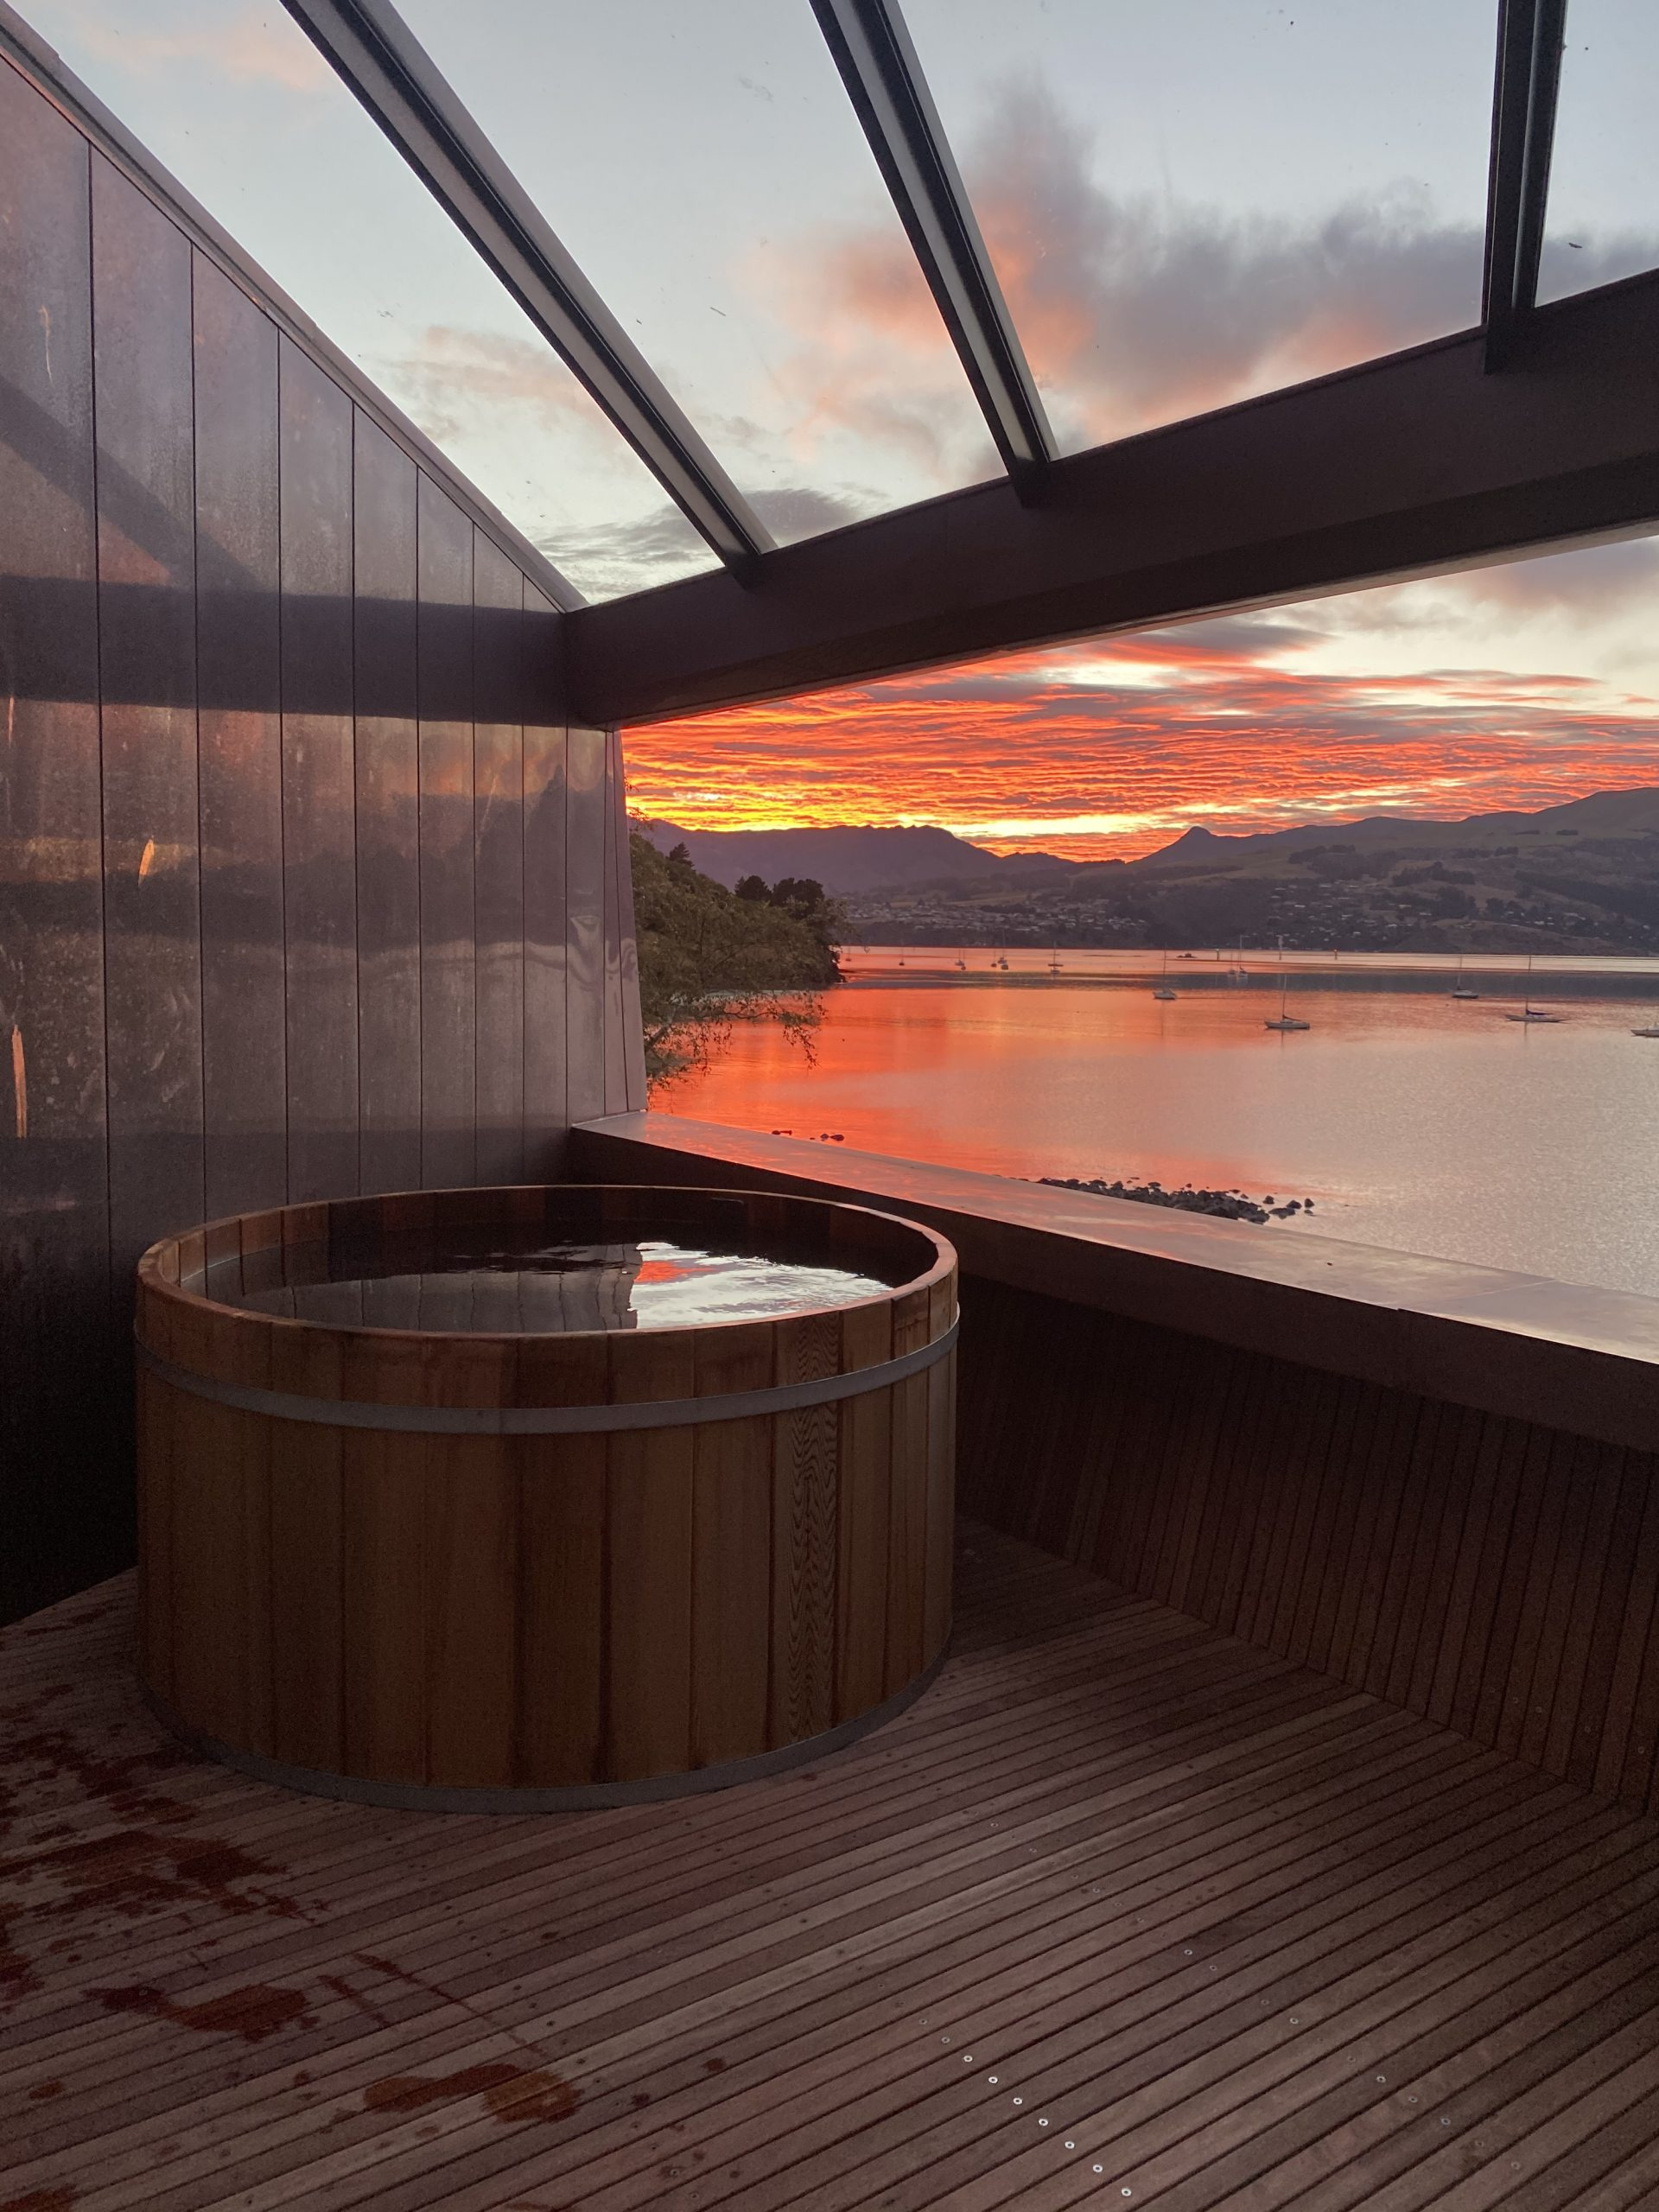 Sunset view of the balcony on the Cass Bay House in New Zealand. The wall and roof panels are clad from Nordic Standard copper.